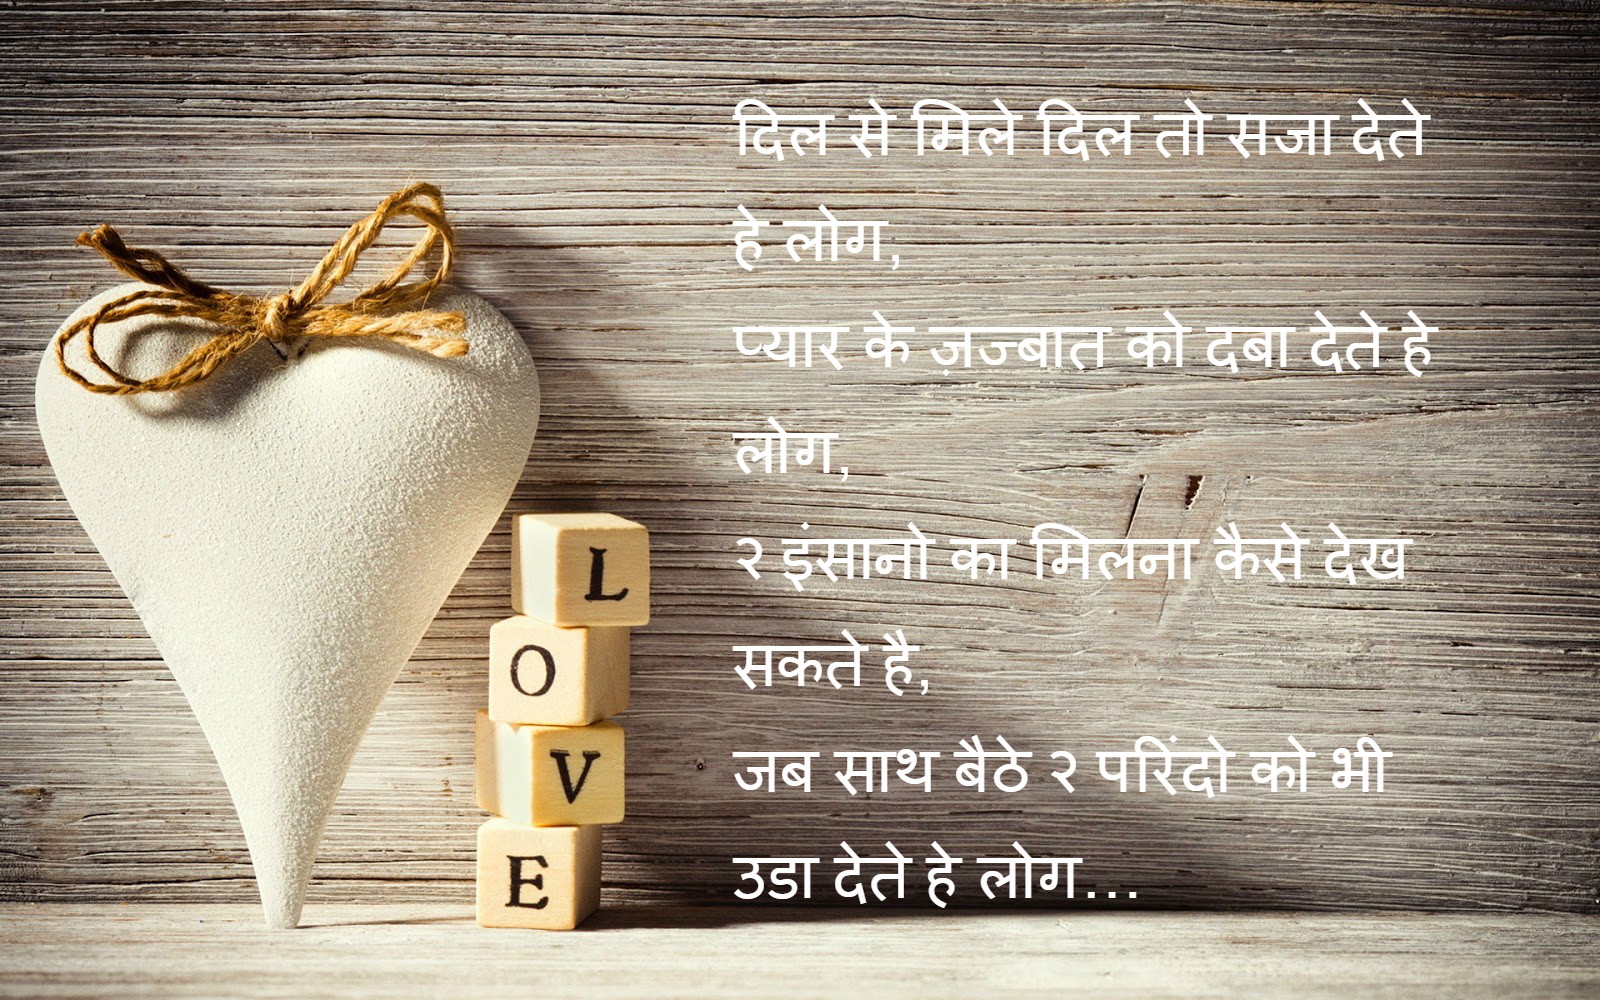 Wallpaper download english - Ishq Hindi Shayari Wallpaper Download 2016